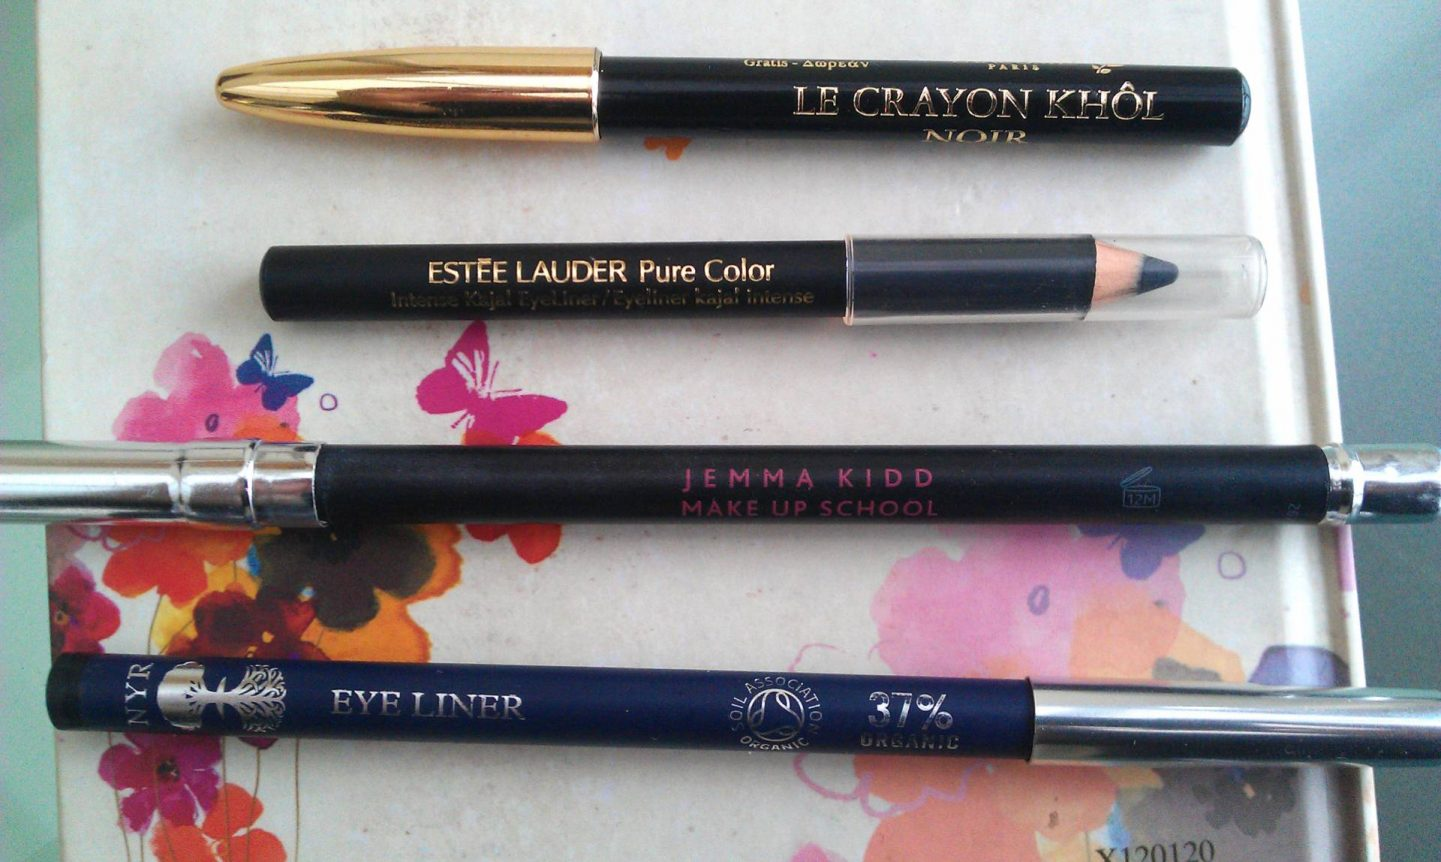 Black Eyeliner Pencils Review: The good, the bad and the brilliant